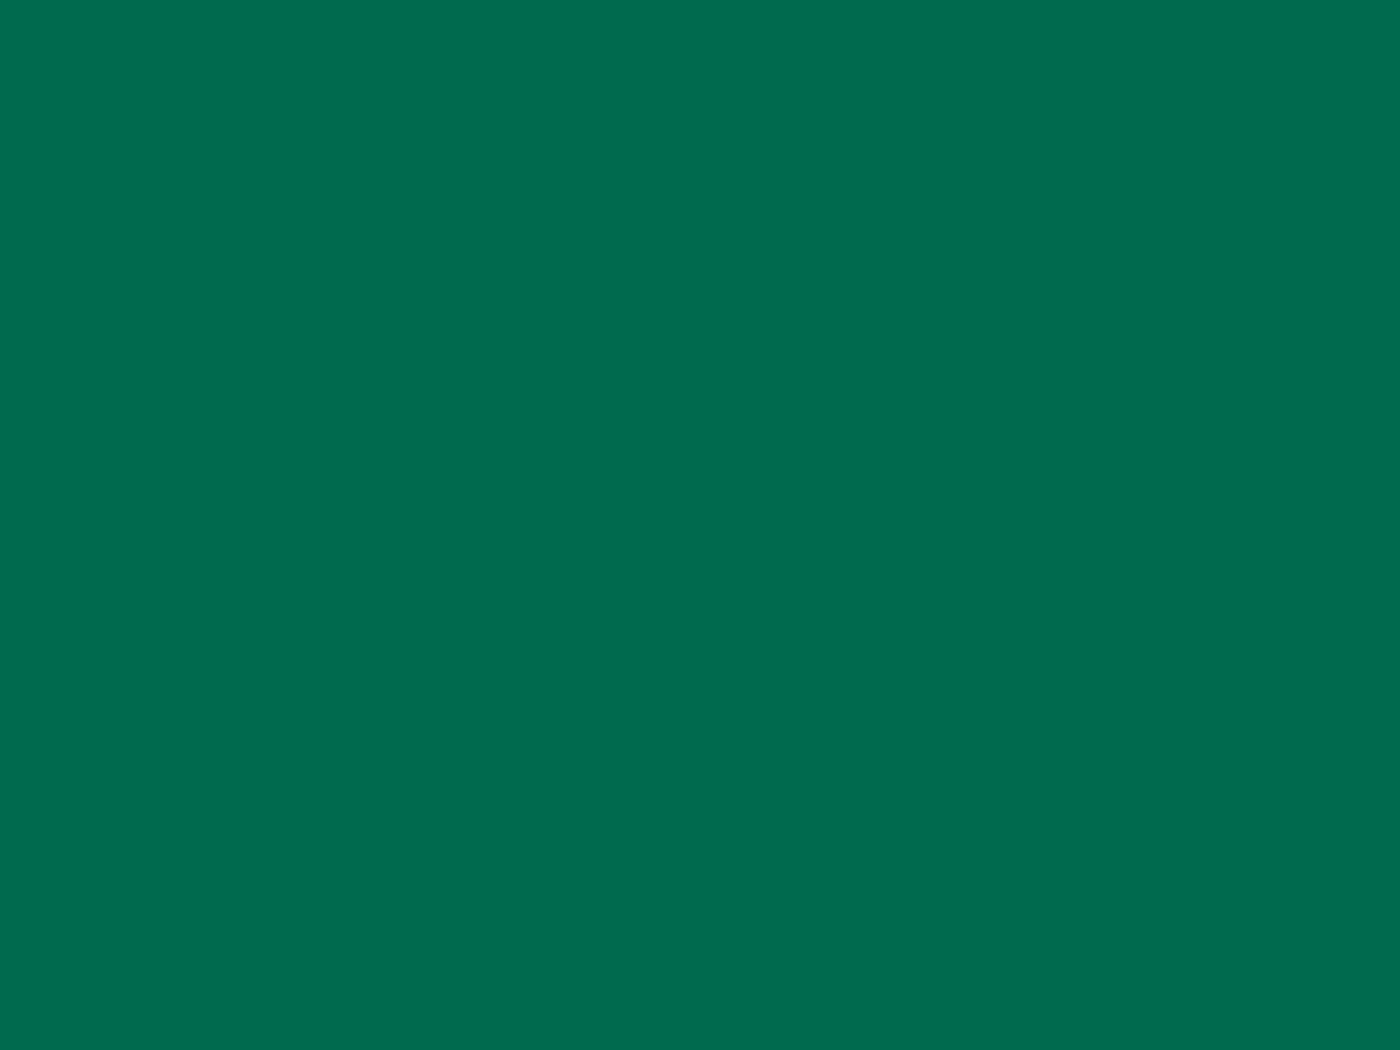 1400x1050 Bottle Green Solid Color Background